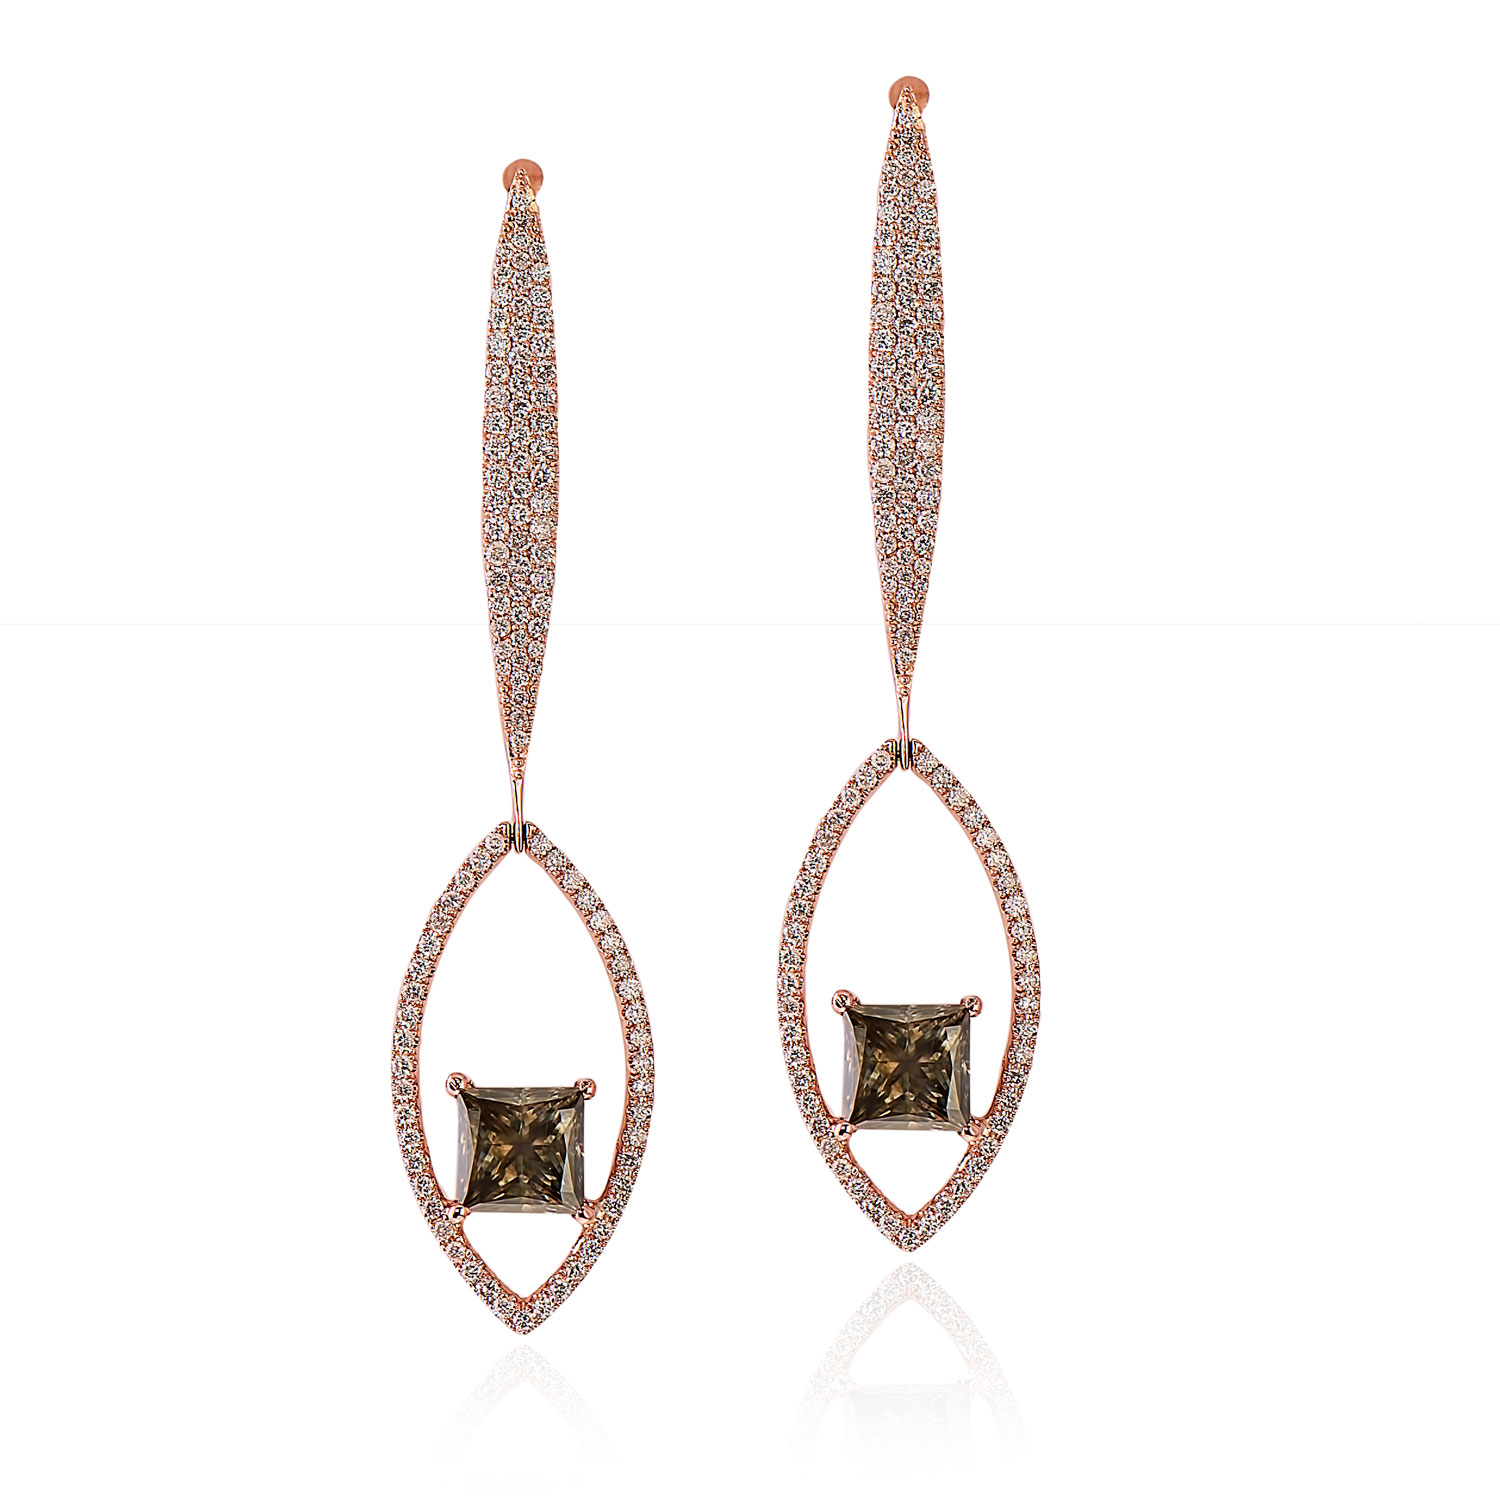 One Pair of 4.27ct TW Fancy Brownish Green Diamond Earrings (6.30ct TW)